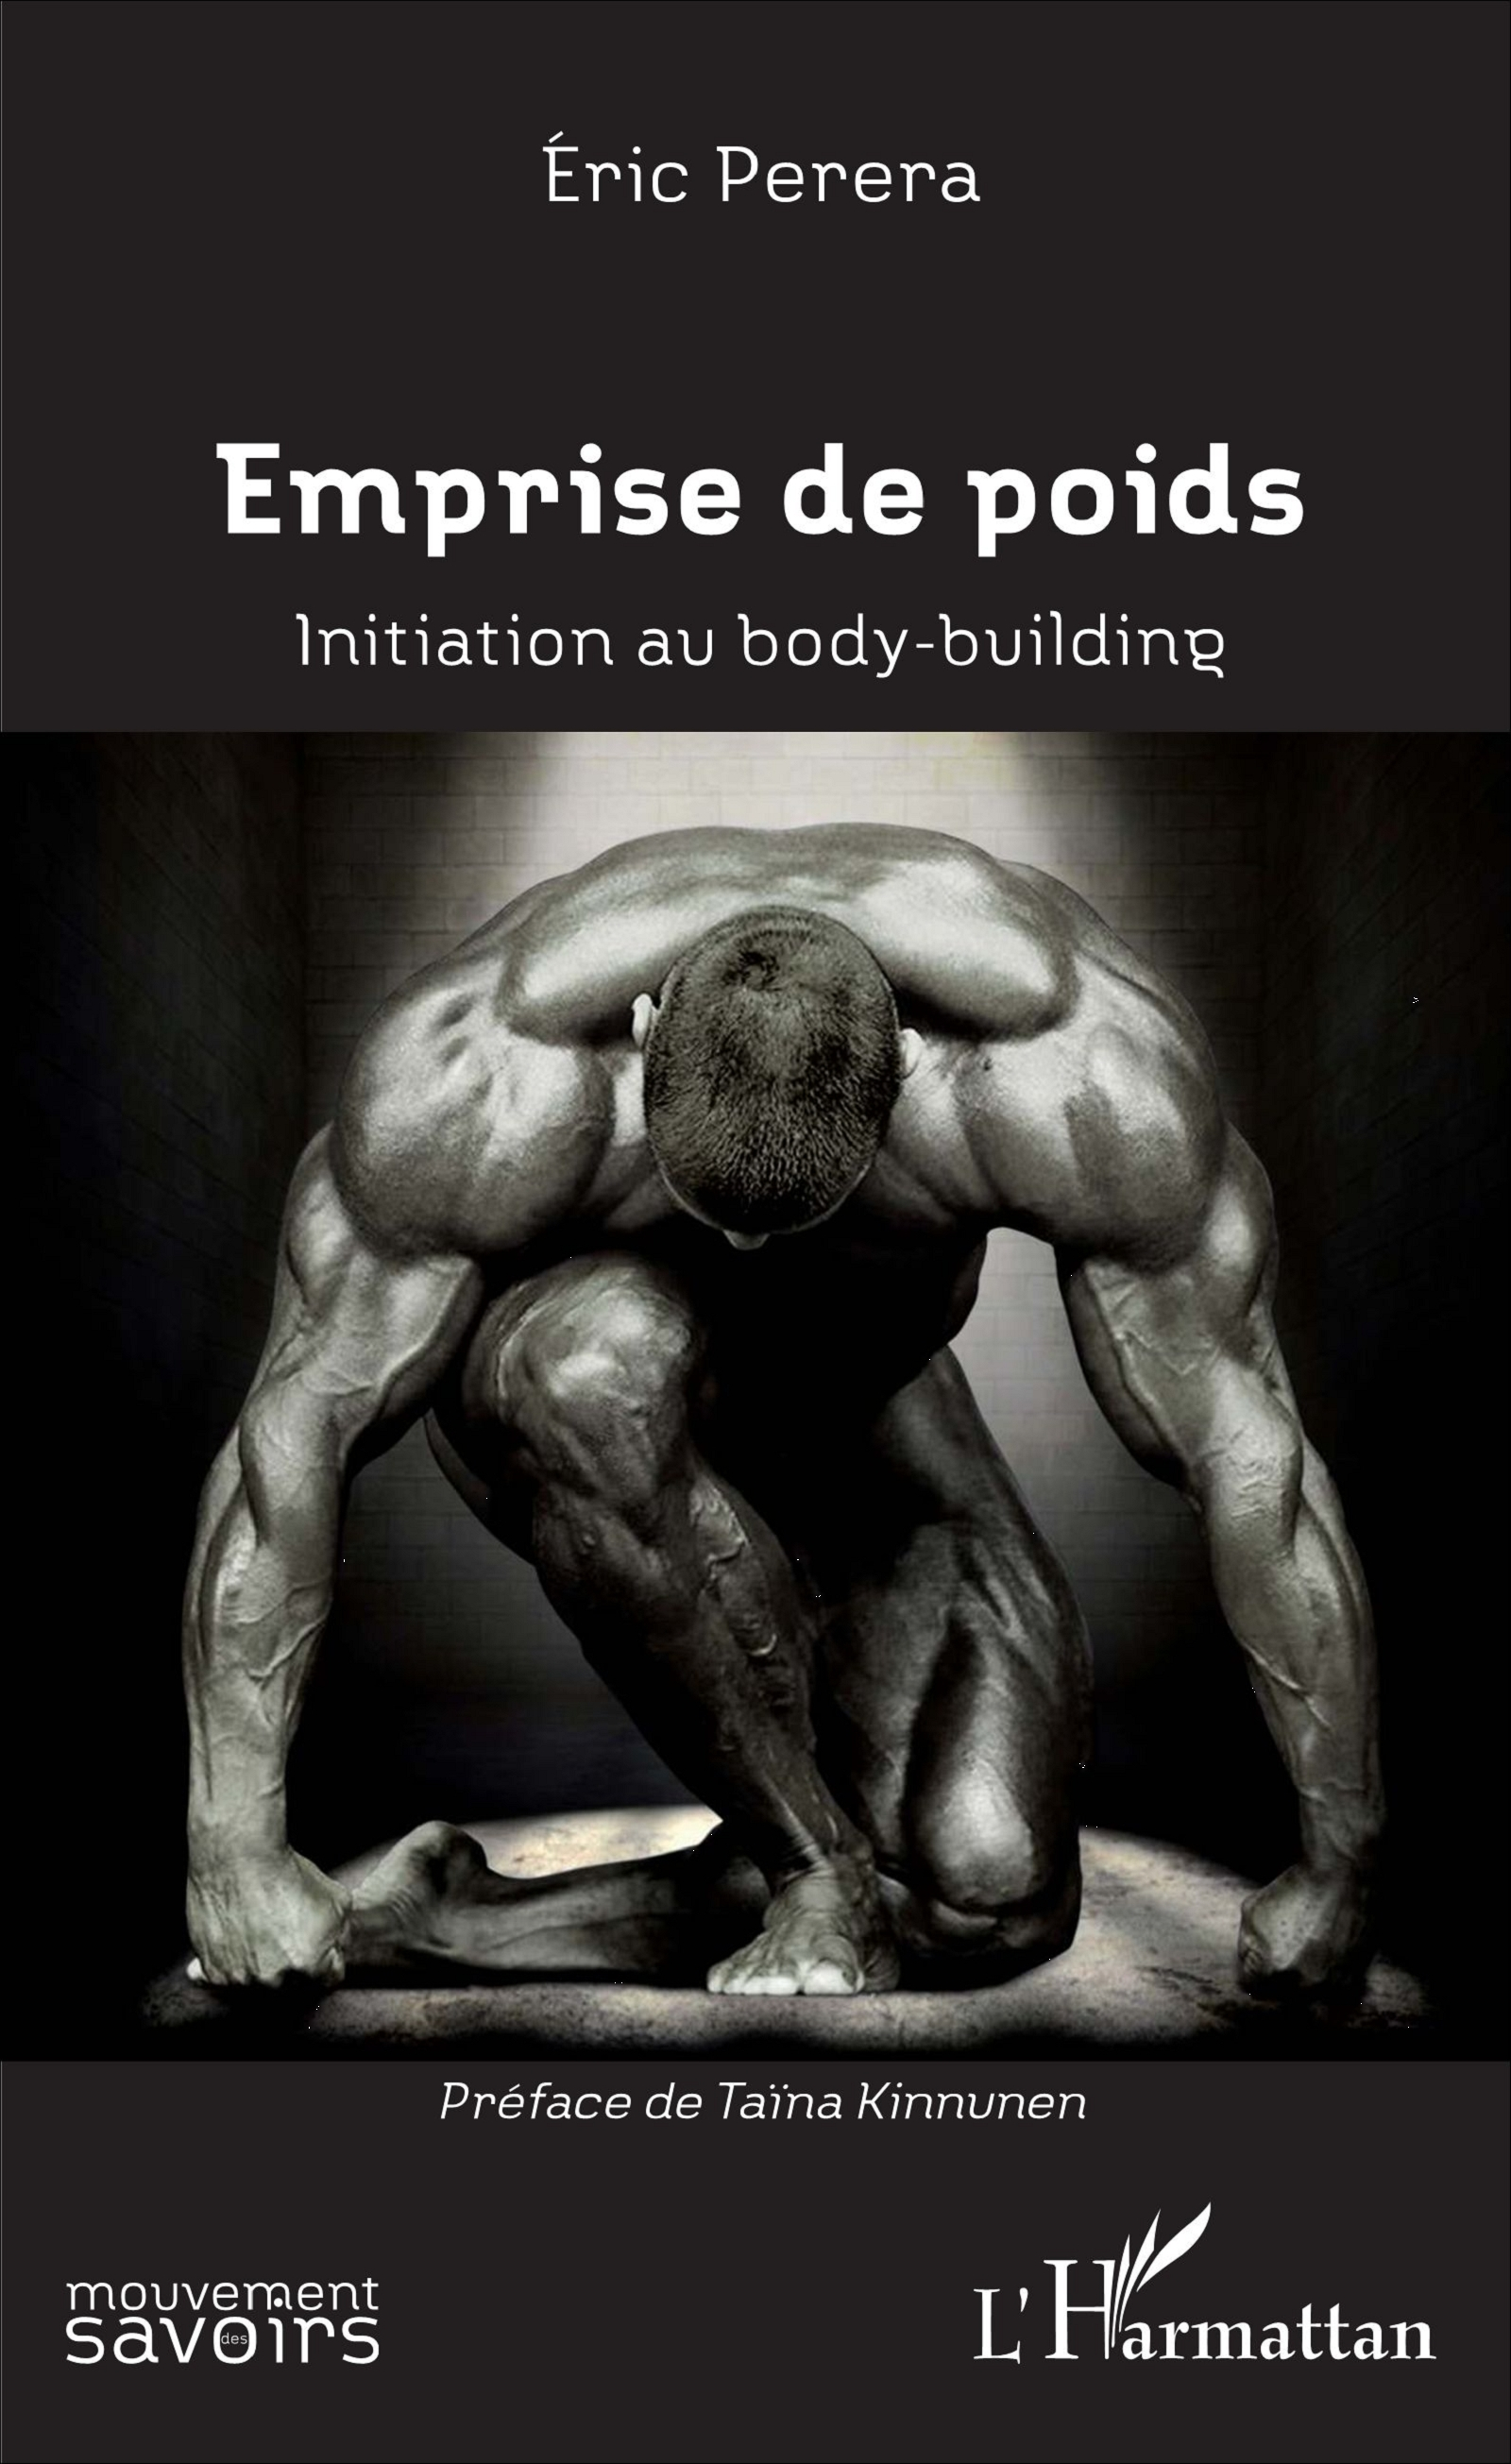 EMPRISE DE POIDS - INITIATION AU BODY-BUILDING